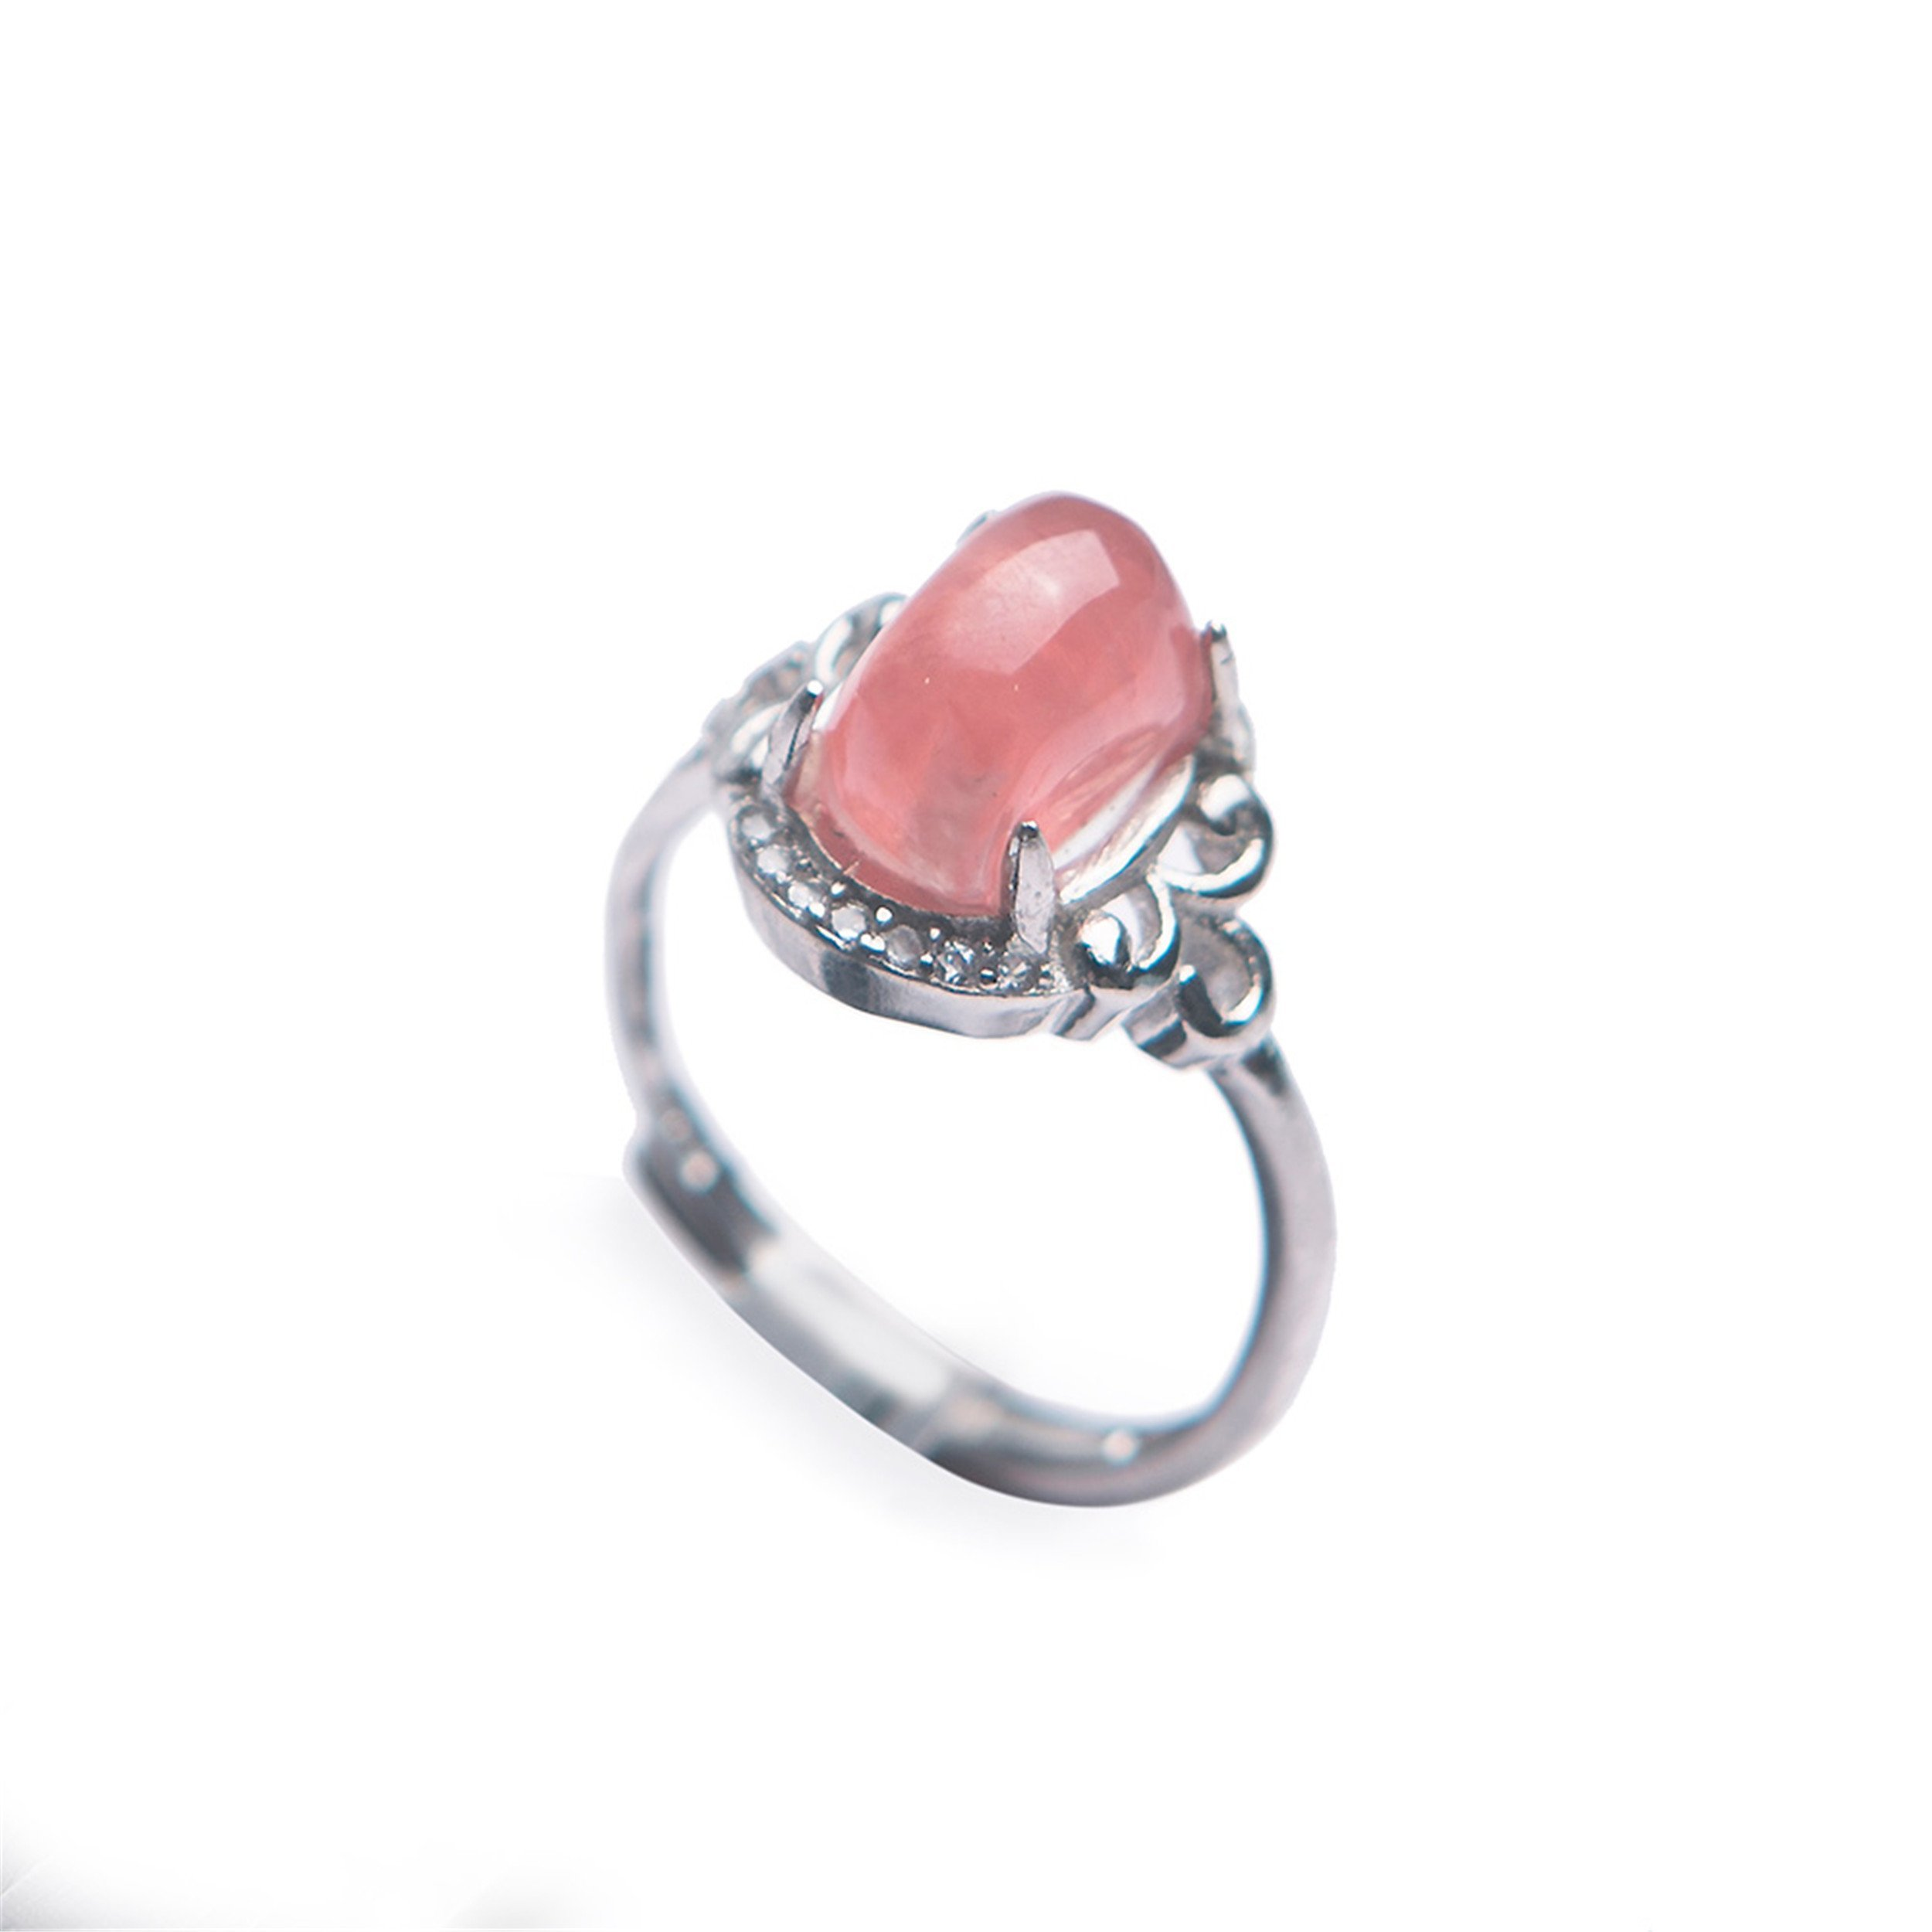 LiZiFang Genuine Natural Rhodochrosite Gemstone Crystal Silver Love Wedding Ring Women Adustable Size